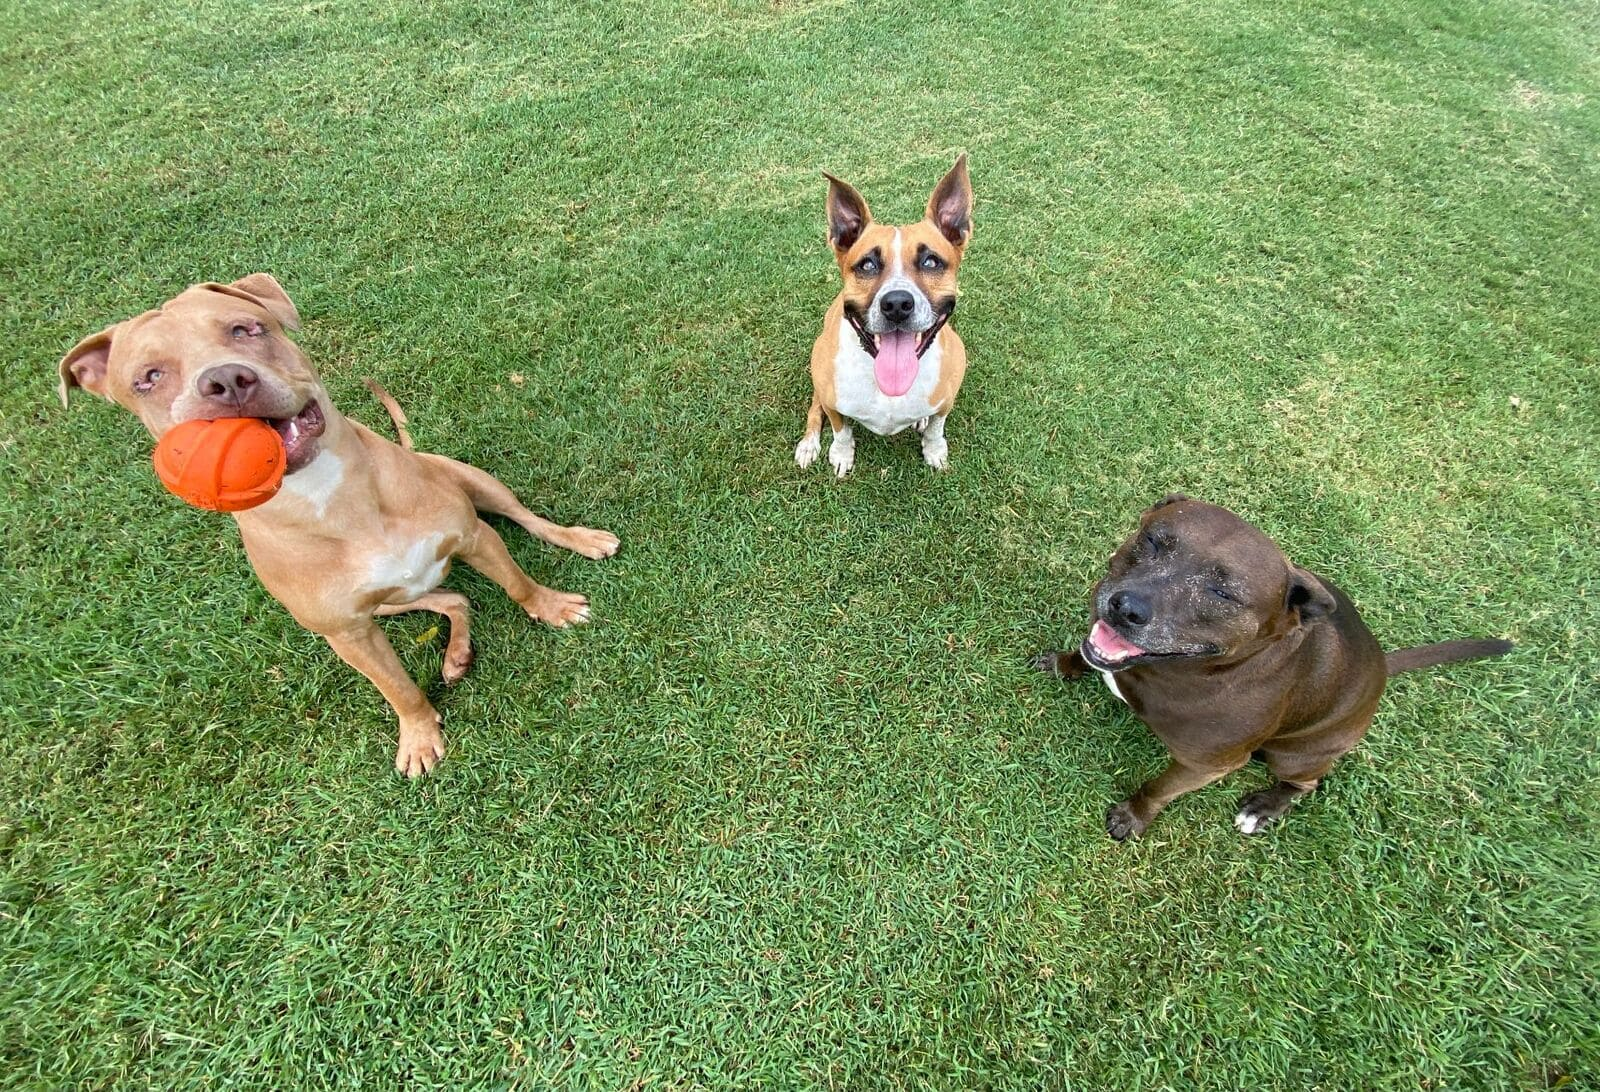 3 dogs sitting in the grass, ready to play fetch